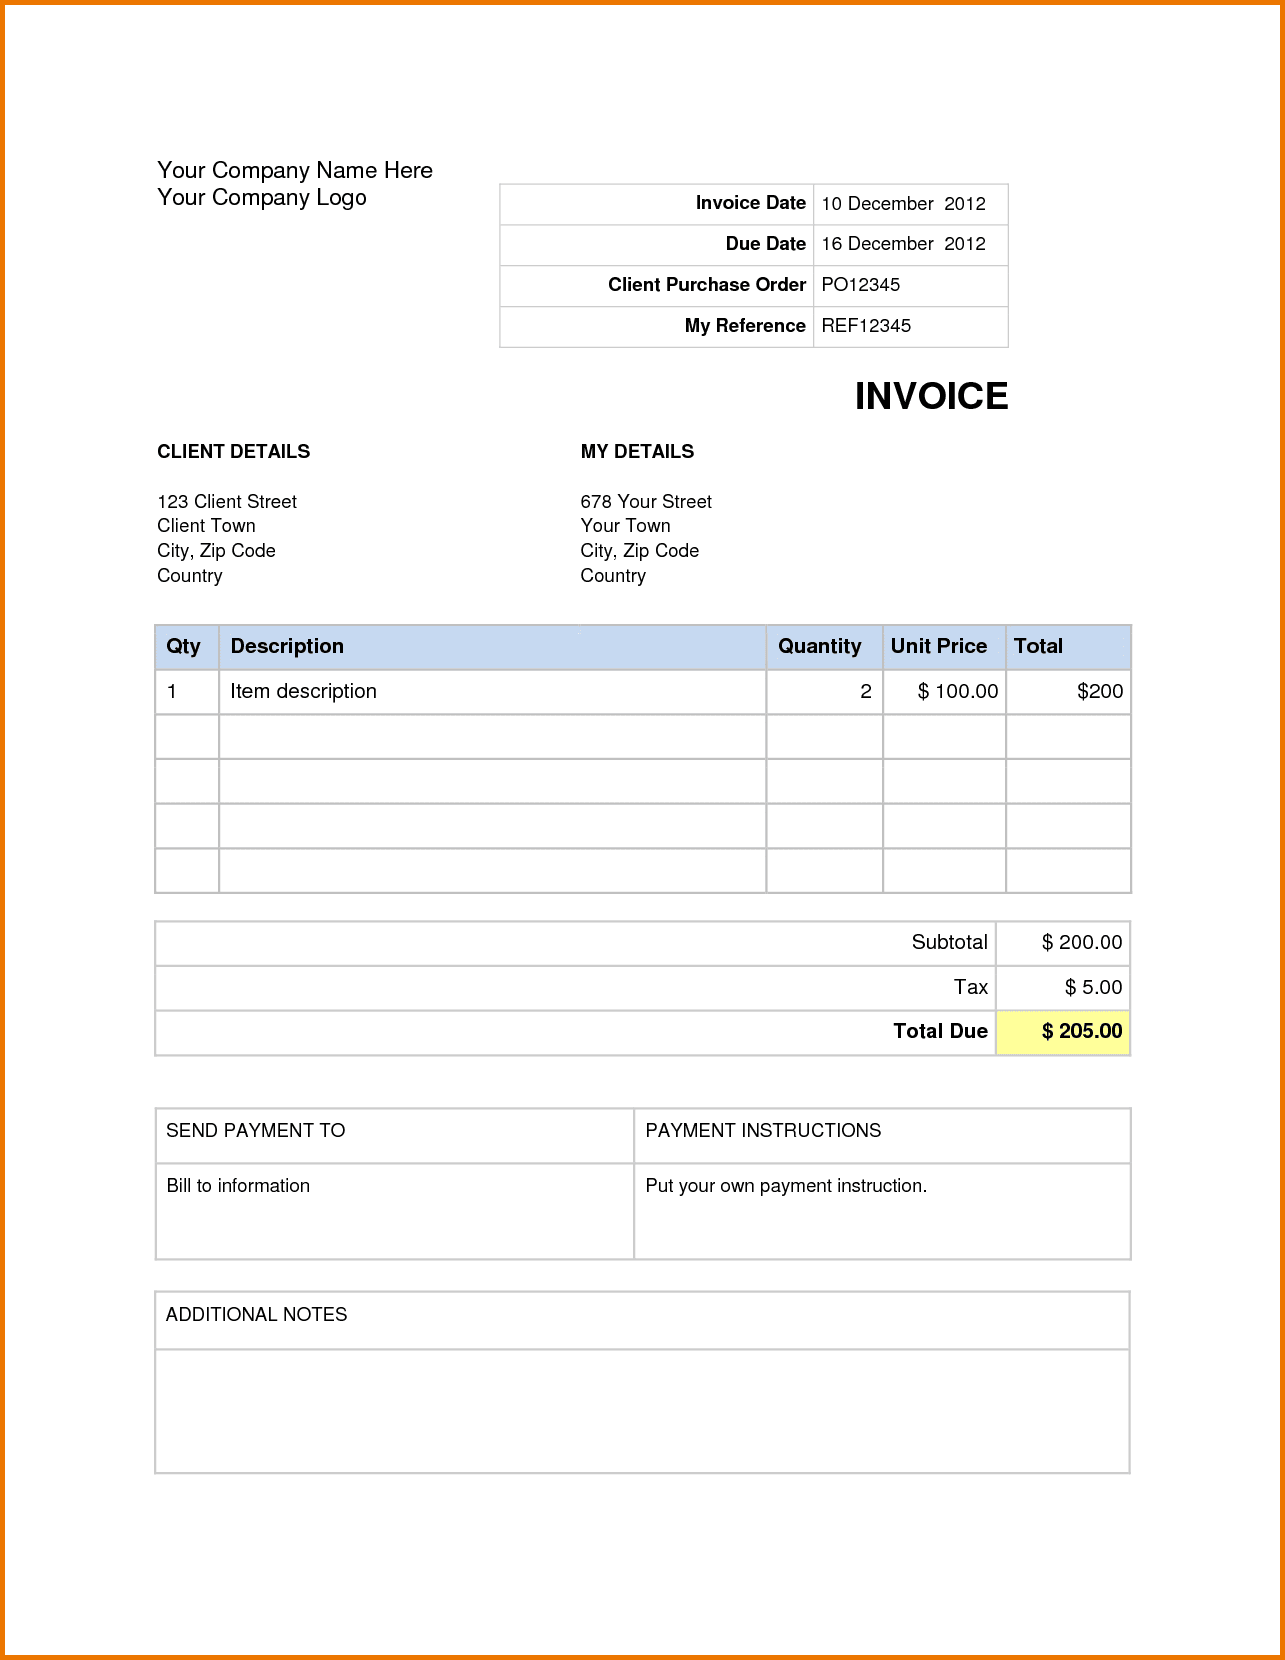 Invoice Templates Printable Free 1 Invoice Template Microsoft Word Spreadsheet Templates for Busines Spreadsheet Templates for Busines Free Invoice Template